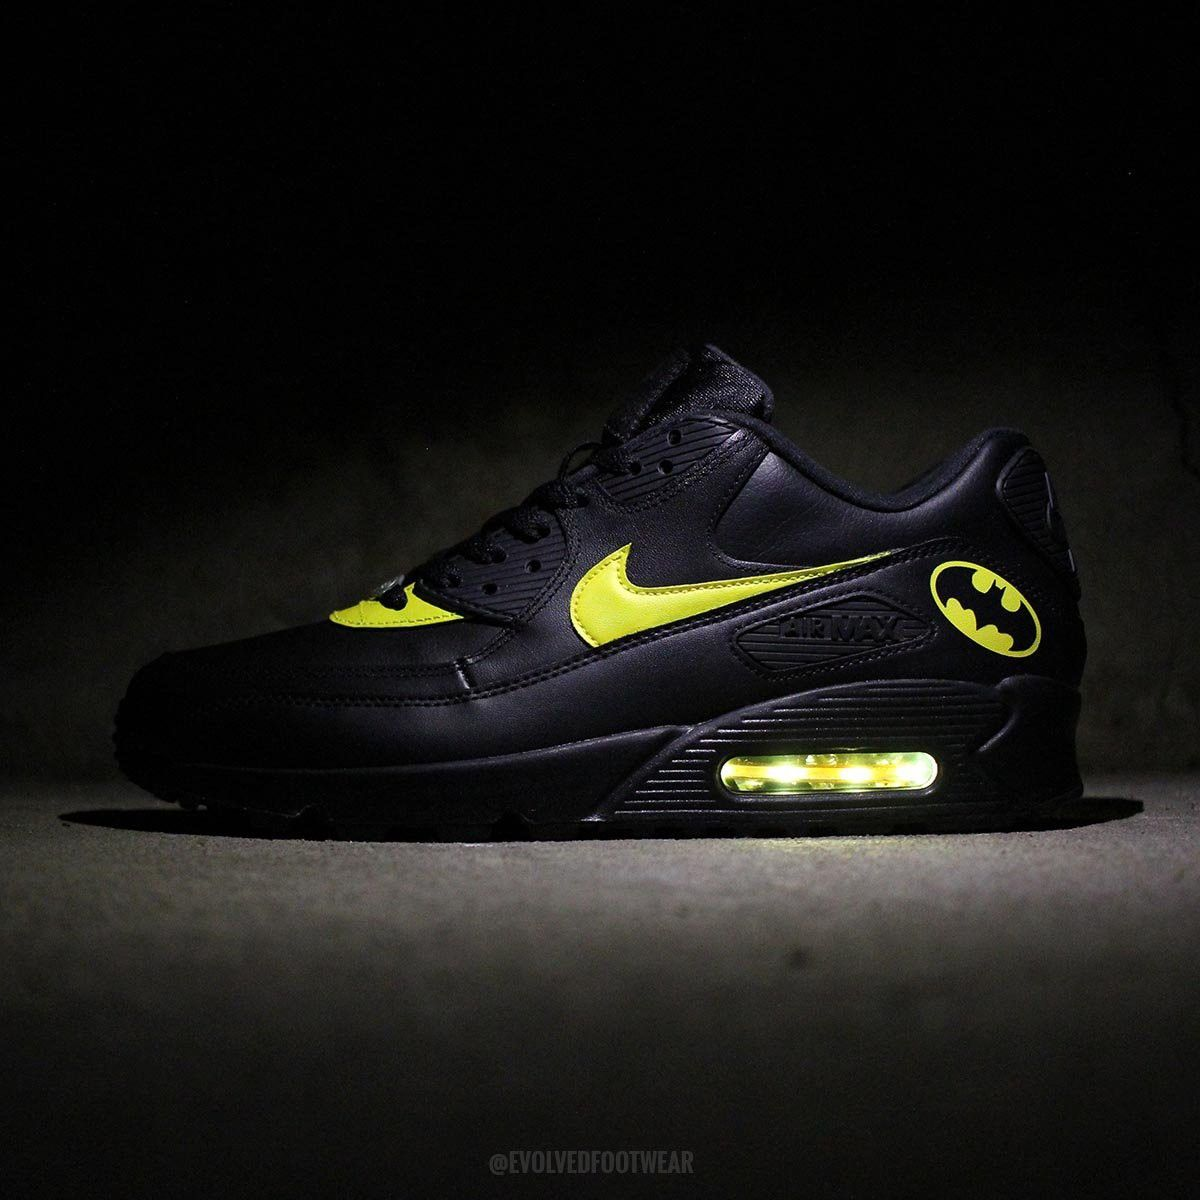 quality design 33529 810fc Air Max 90, Nike Air Max, Light Up Shoes, Shoe Collection, Kicks